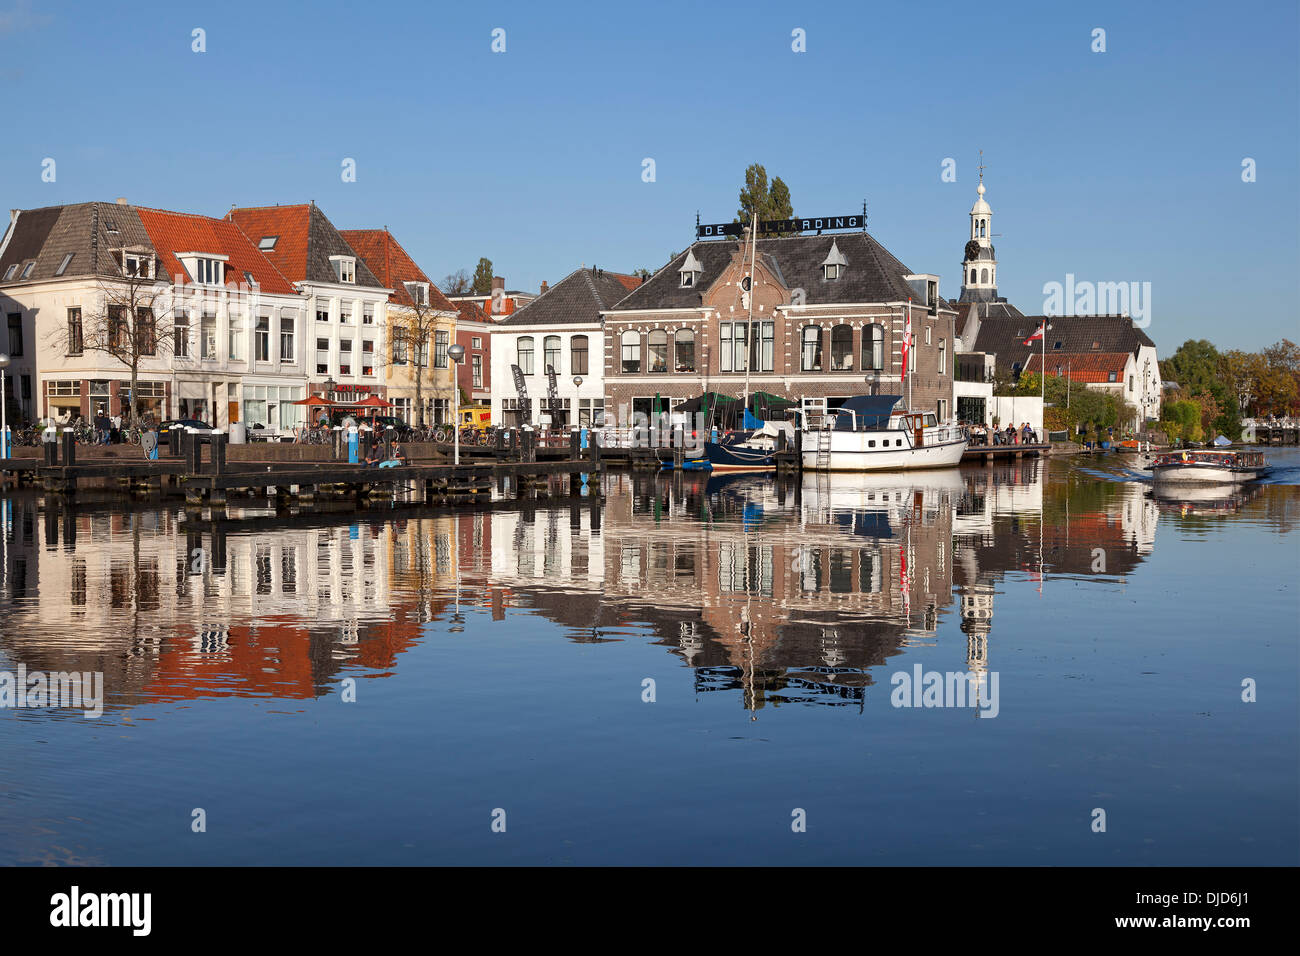 Tourist harbour in Leiden, Holland - Stock Image